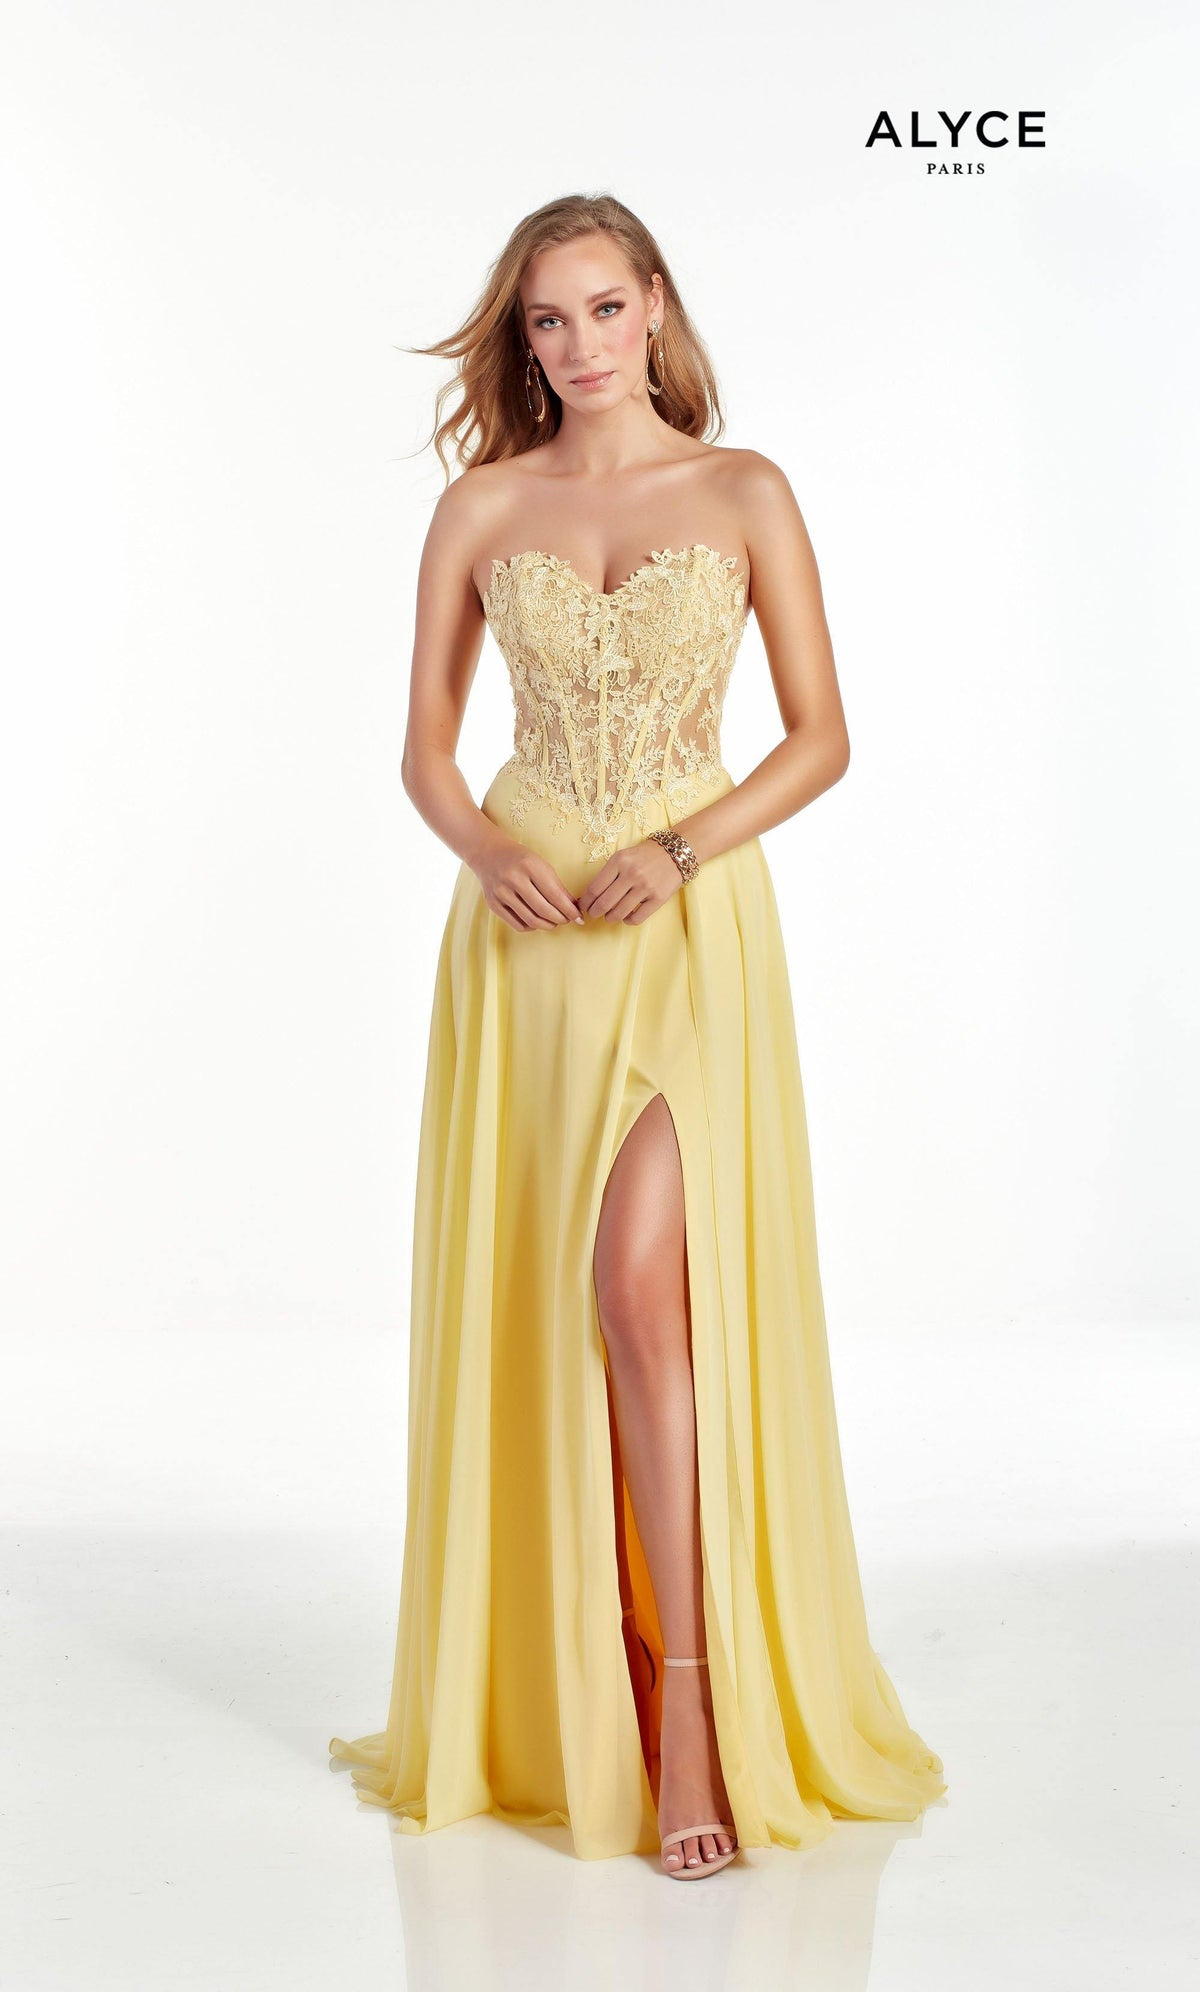 Light Yellow strapless bridesmaid dress with a lace corset bodice with a front slit